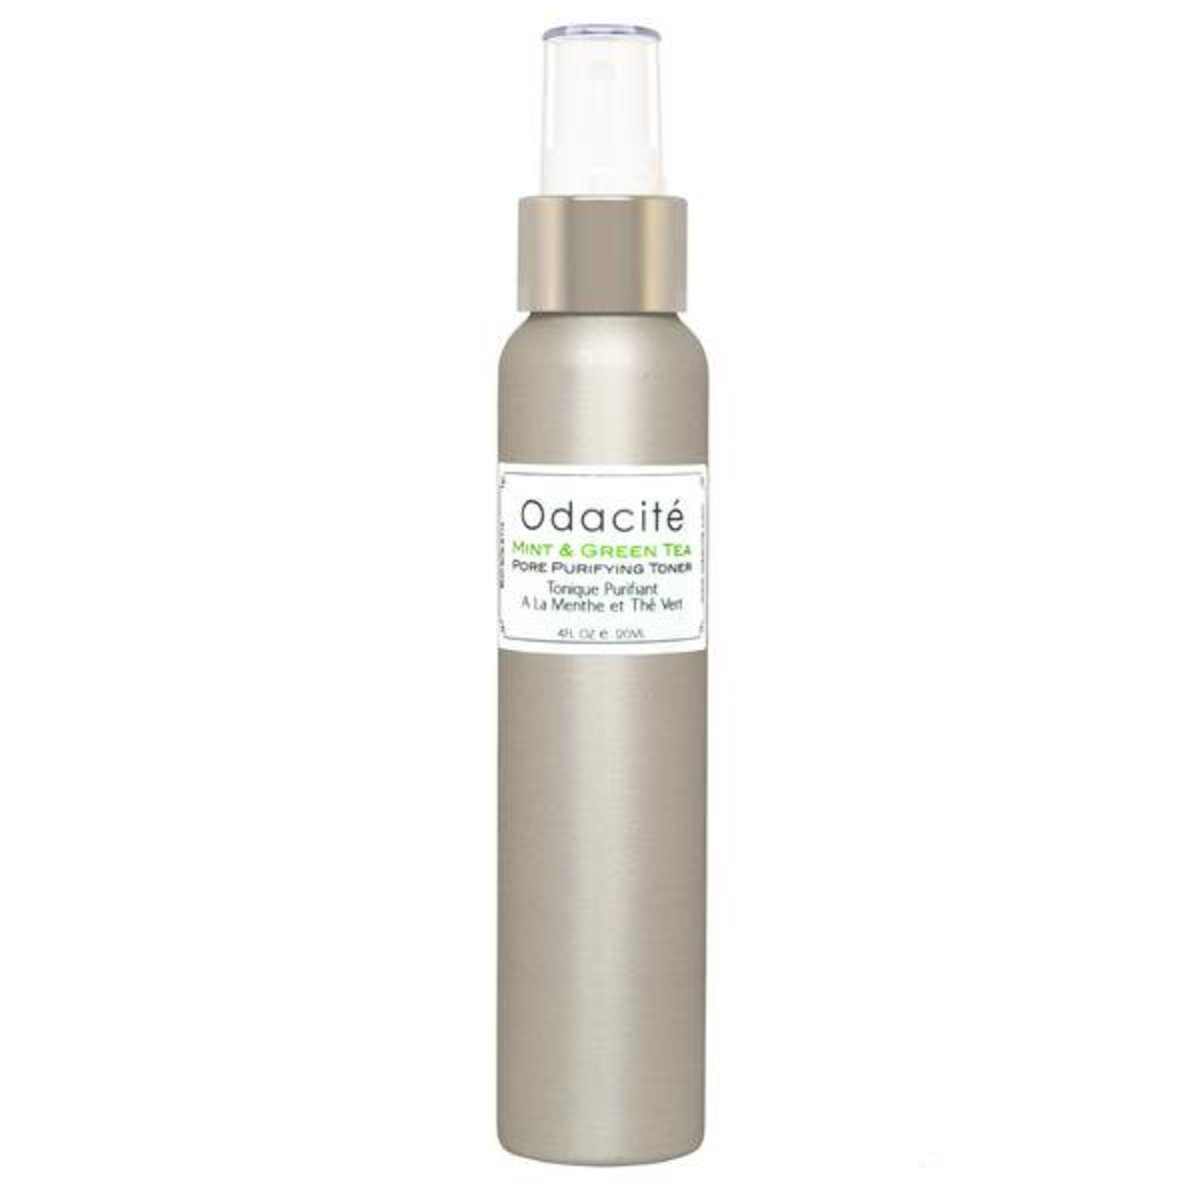 Odacite Mint & Green Tea Pore Purifying Toner